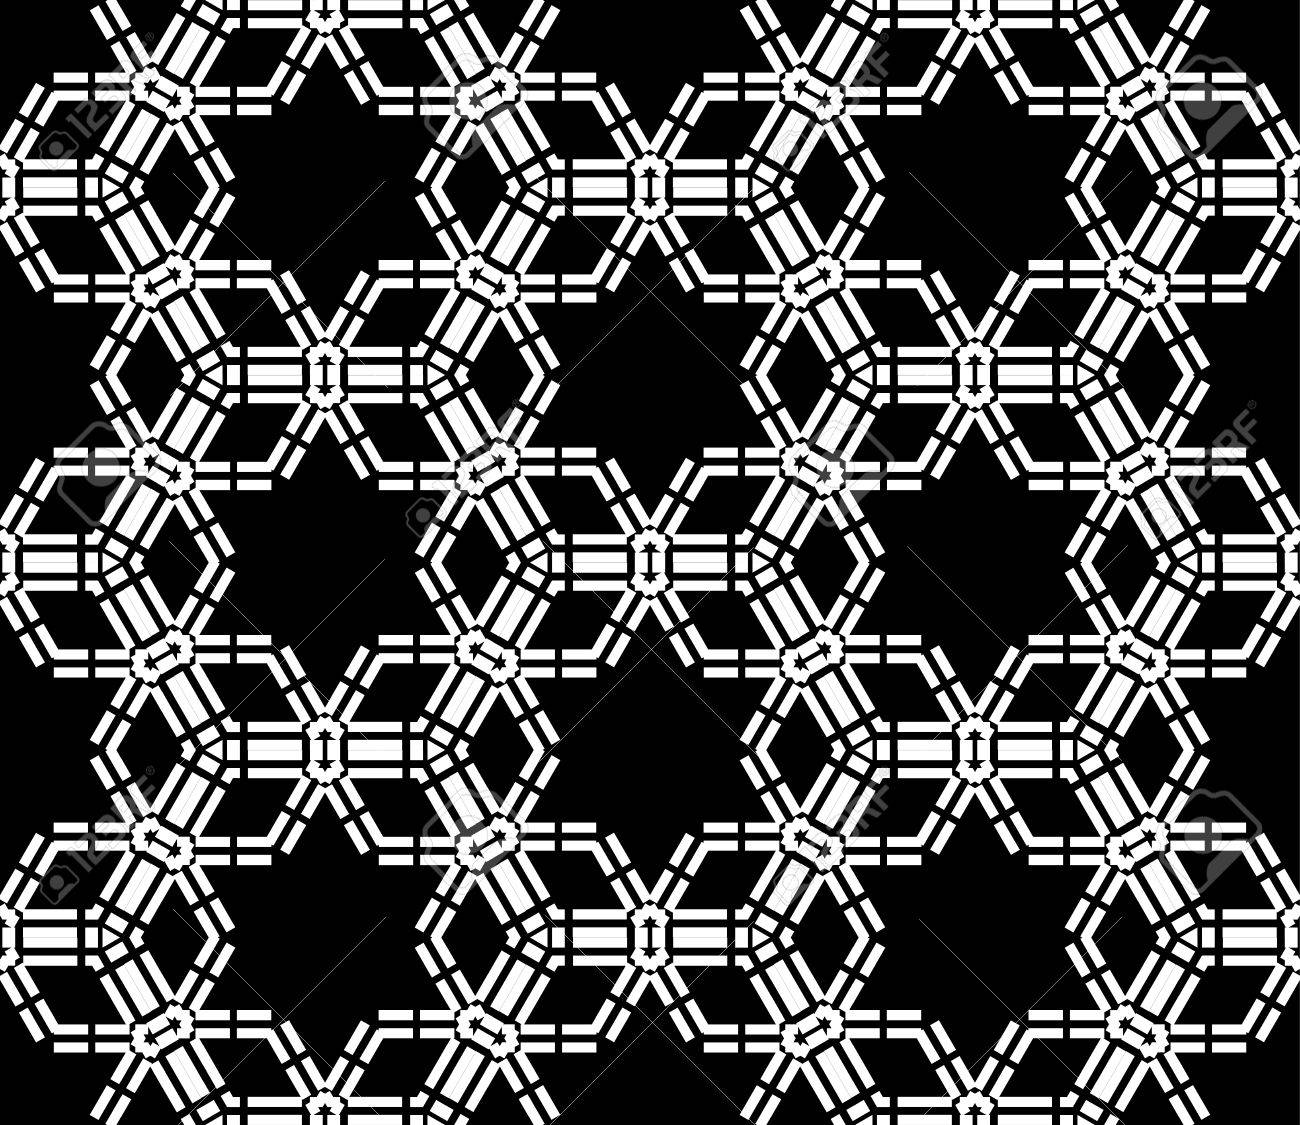 Black and white bed sheets texture - Vector Vector Modern Seamless Pattern Stars Black And White Textile Print Stylish Background Abstract Texture Monochrome Fashion Design Bed Sheets Or